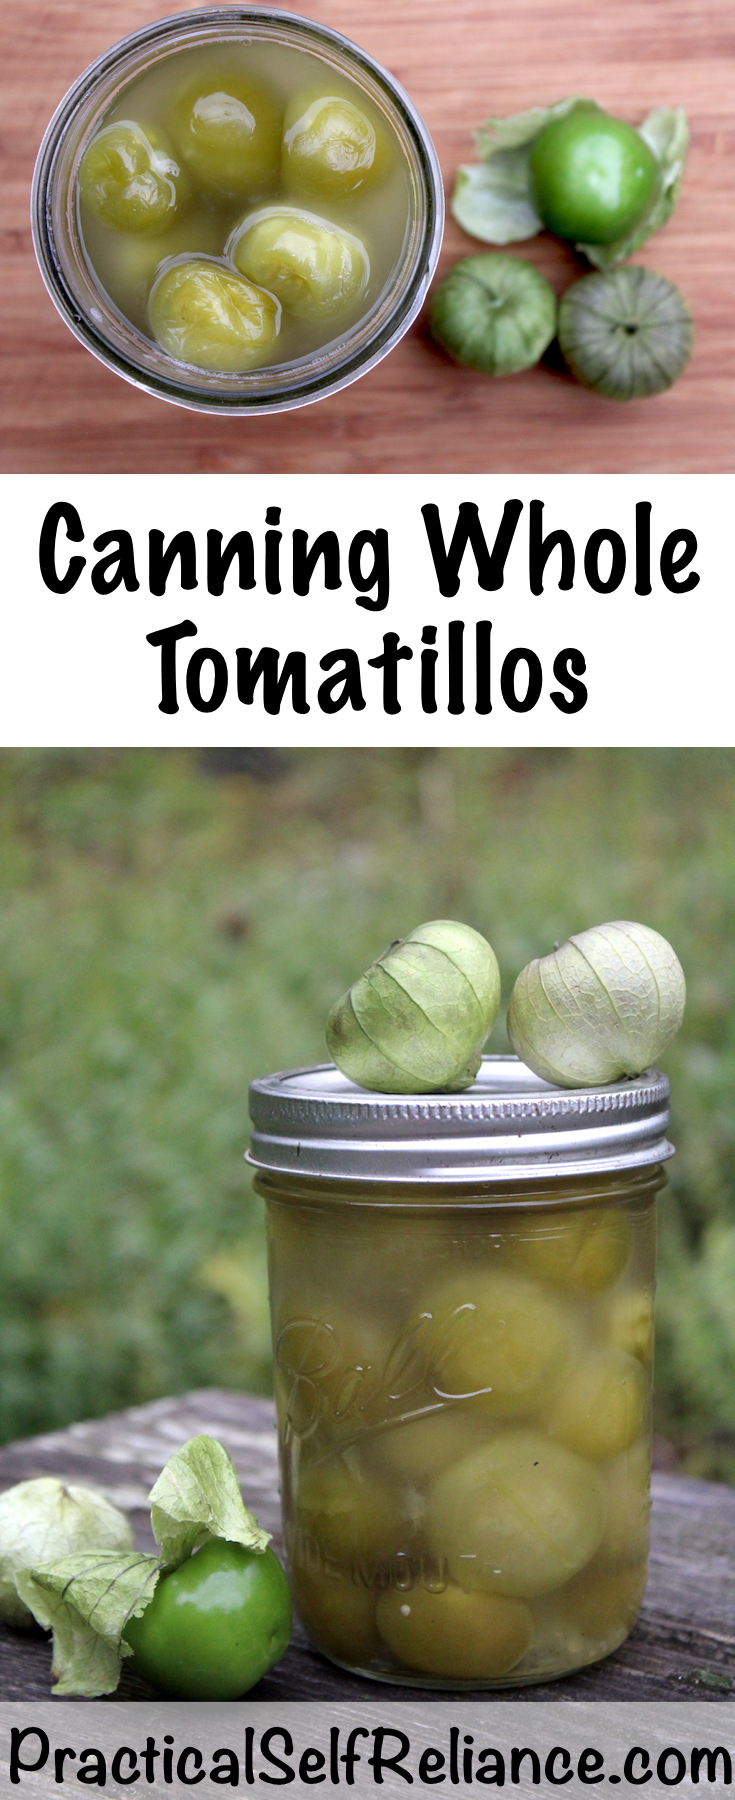 Canning Tomatillos ~ Instructions for Water Bath or Pressure canning whole tomatillos ~ Preserving Tomatillos